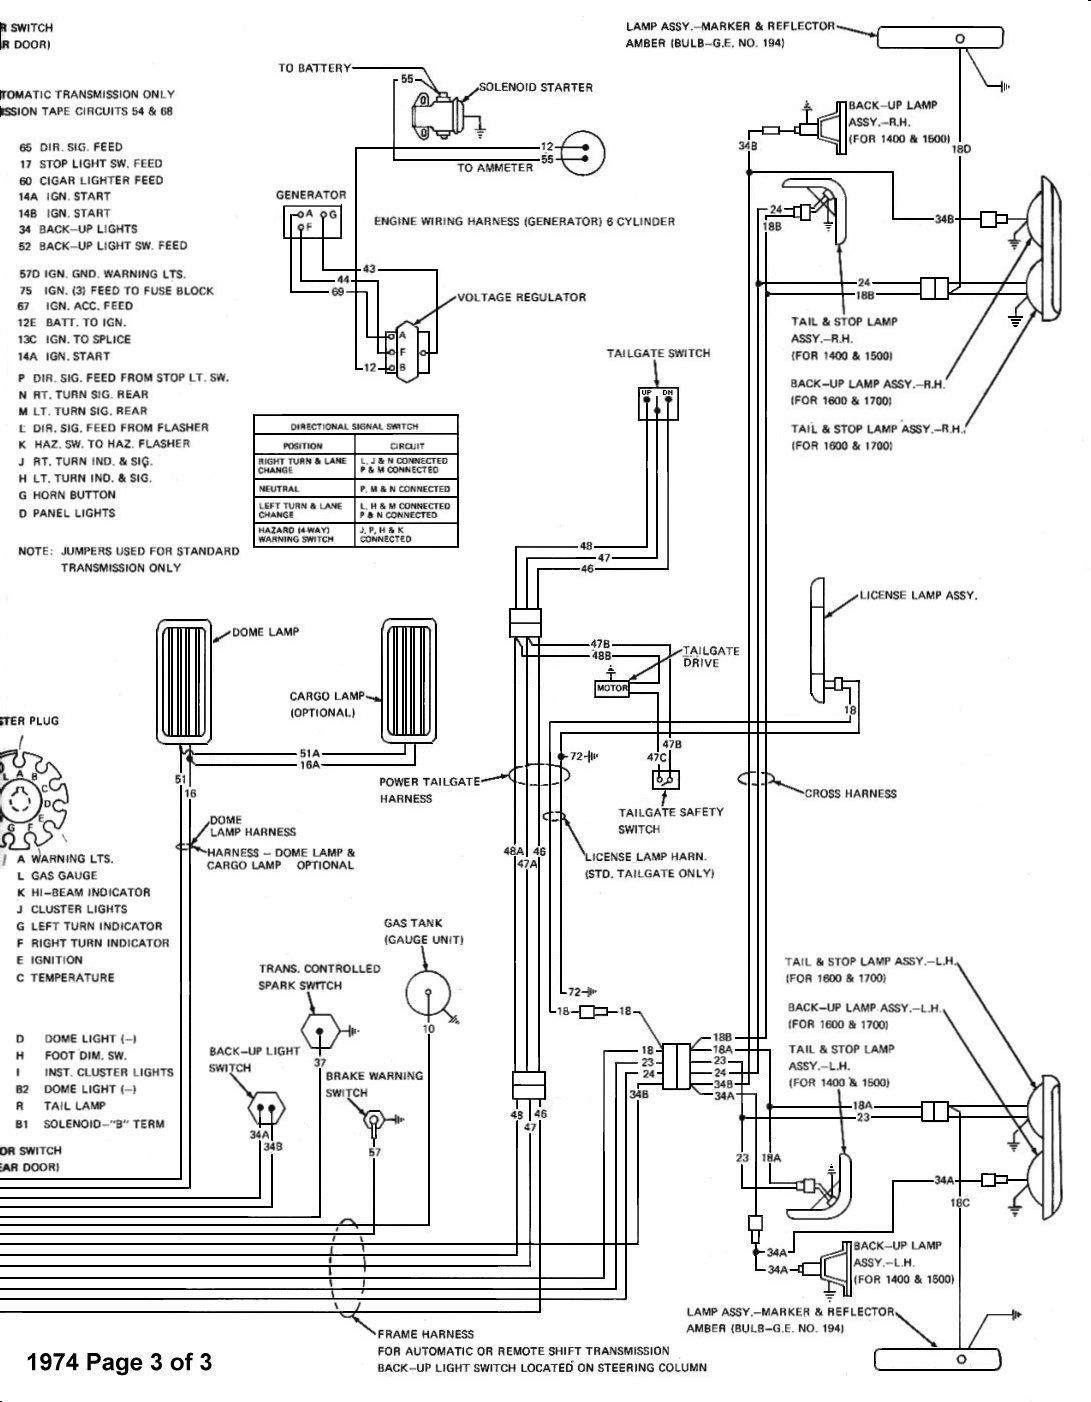 Jeep Blower Motor Wiring Diagram List Of Schematic Circuit 1993 Wrangler Engine 96 Cherokee Fuse International Rh Pinterest Com 1996 1998